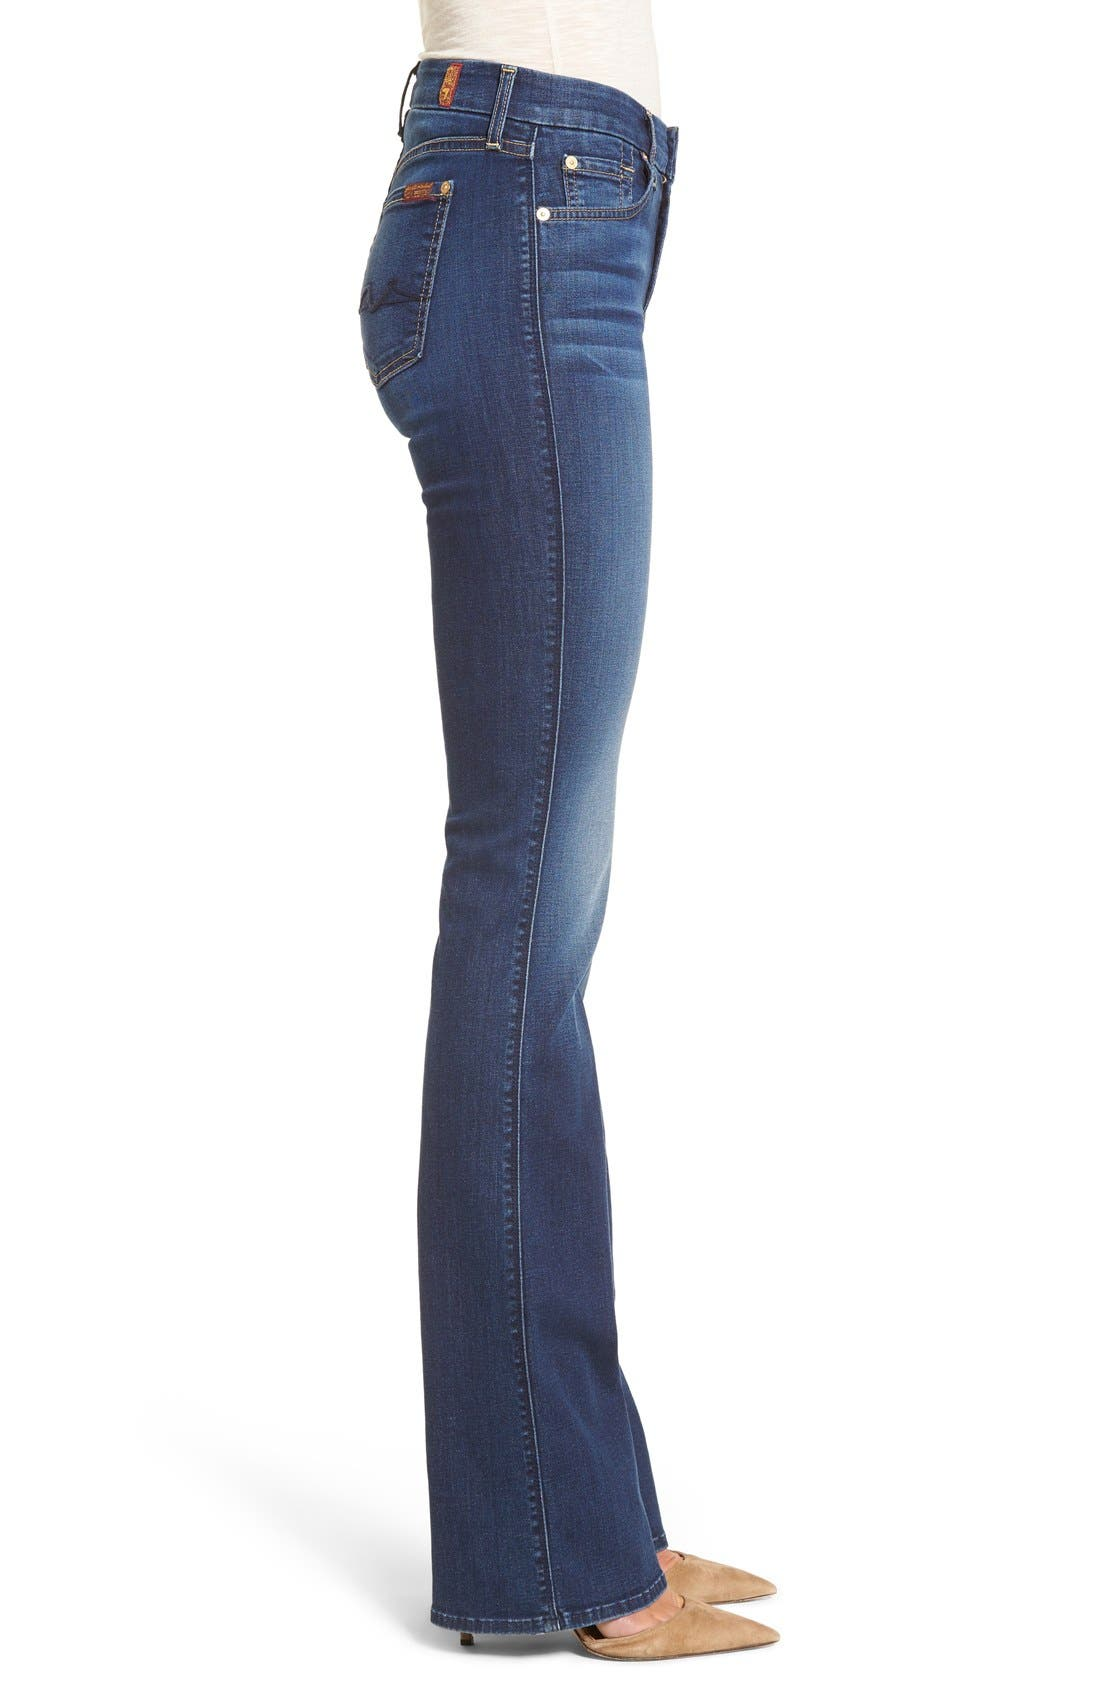 b(air) - Kimmie Bootcut Jeans,                             Alternate thumbnail 3, color,                             Duchess